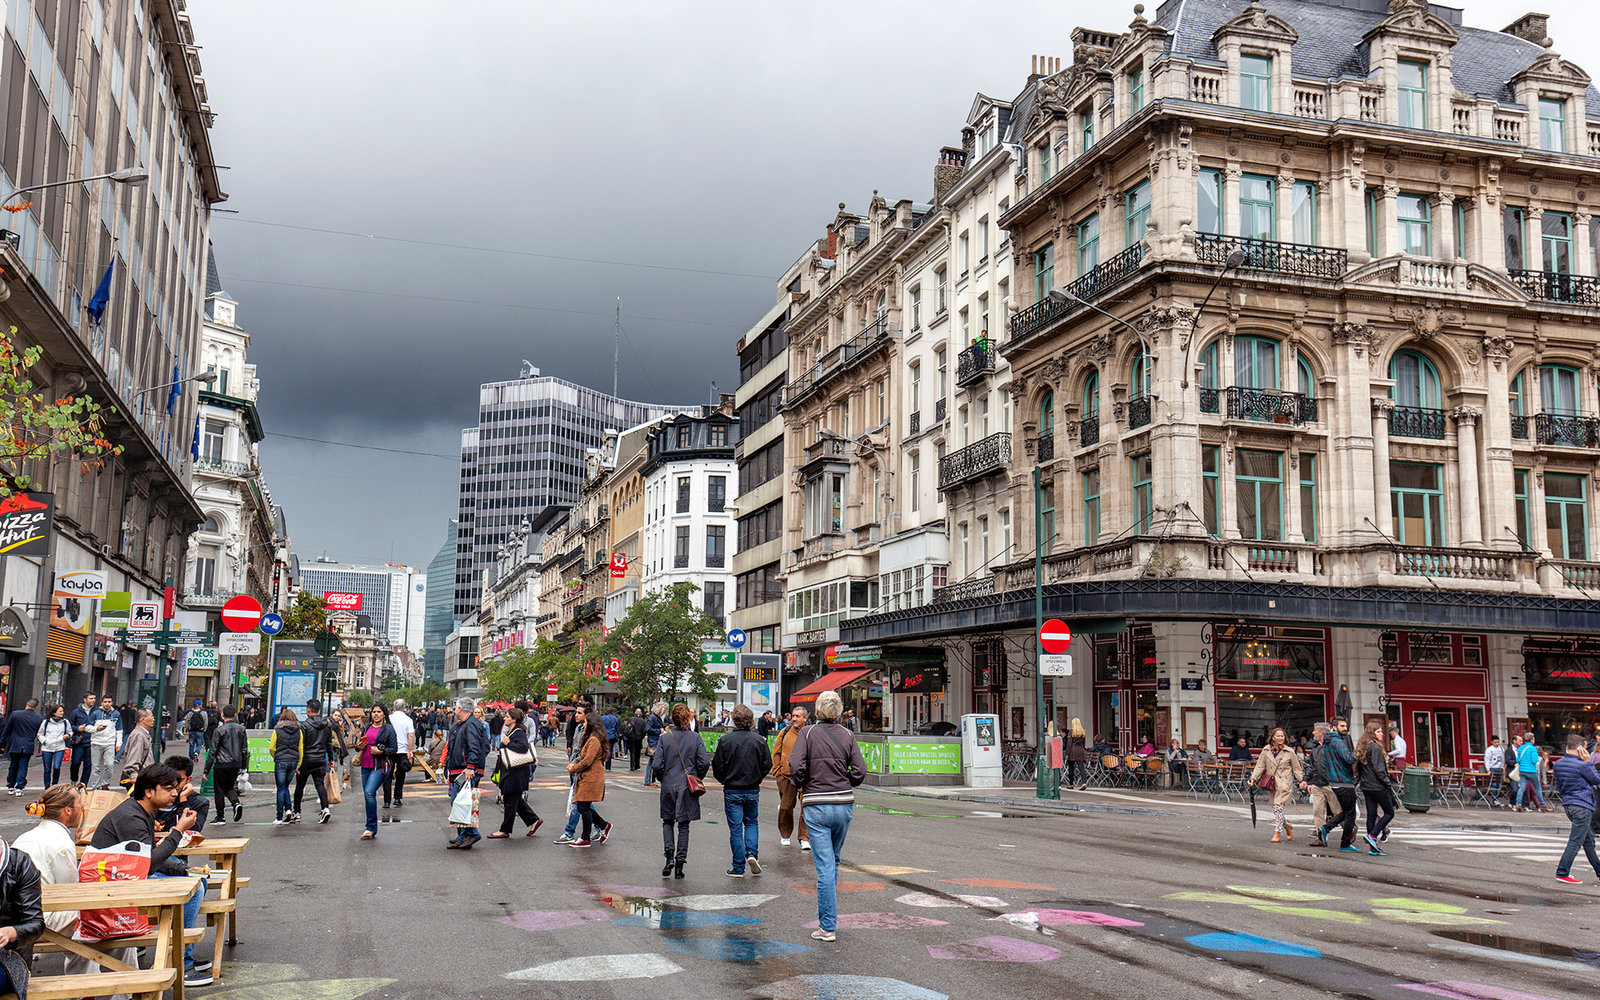 Boulevard Anspach is now pedestrianised